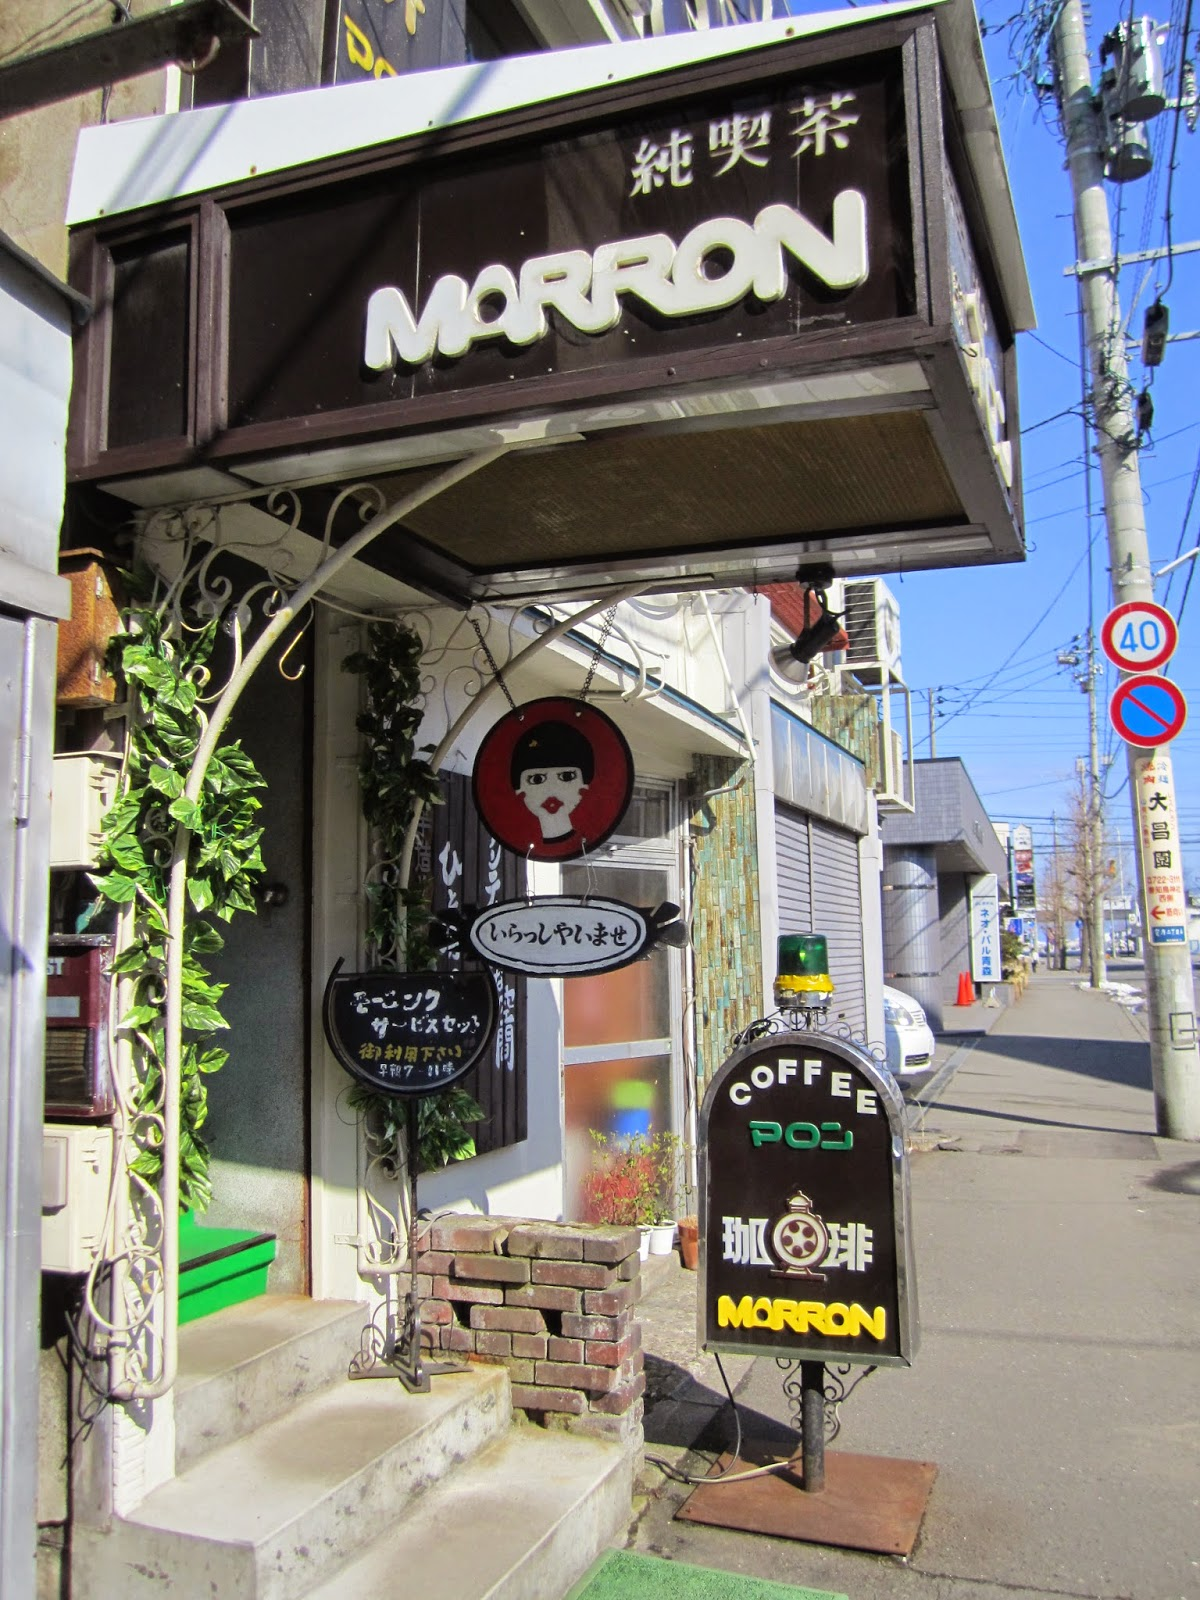 Kissa Marron 喫茶マロンMarron Coffee Coffee Marron マロン珈琲店